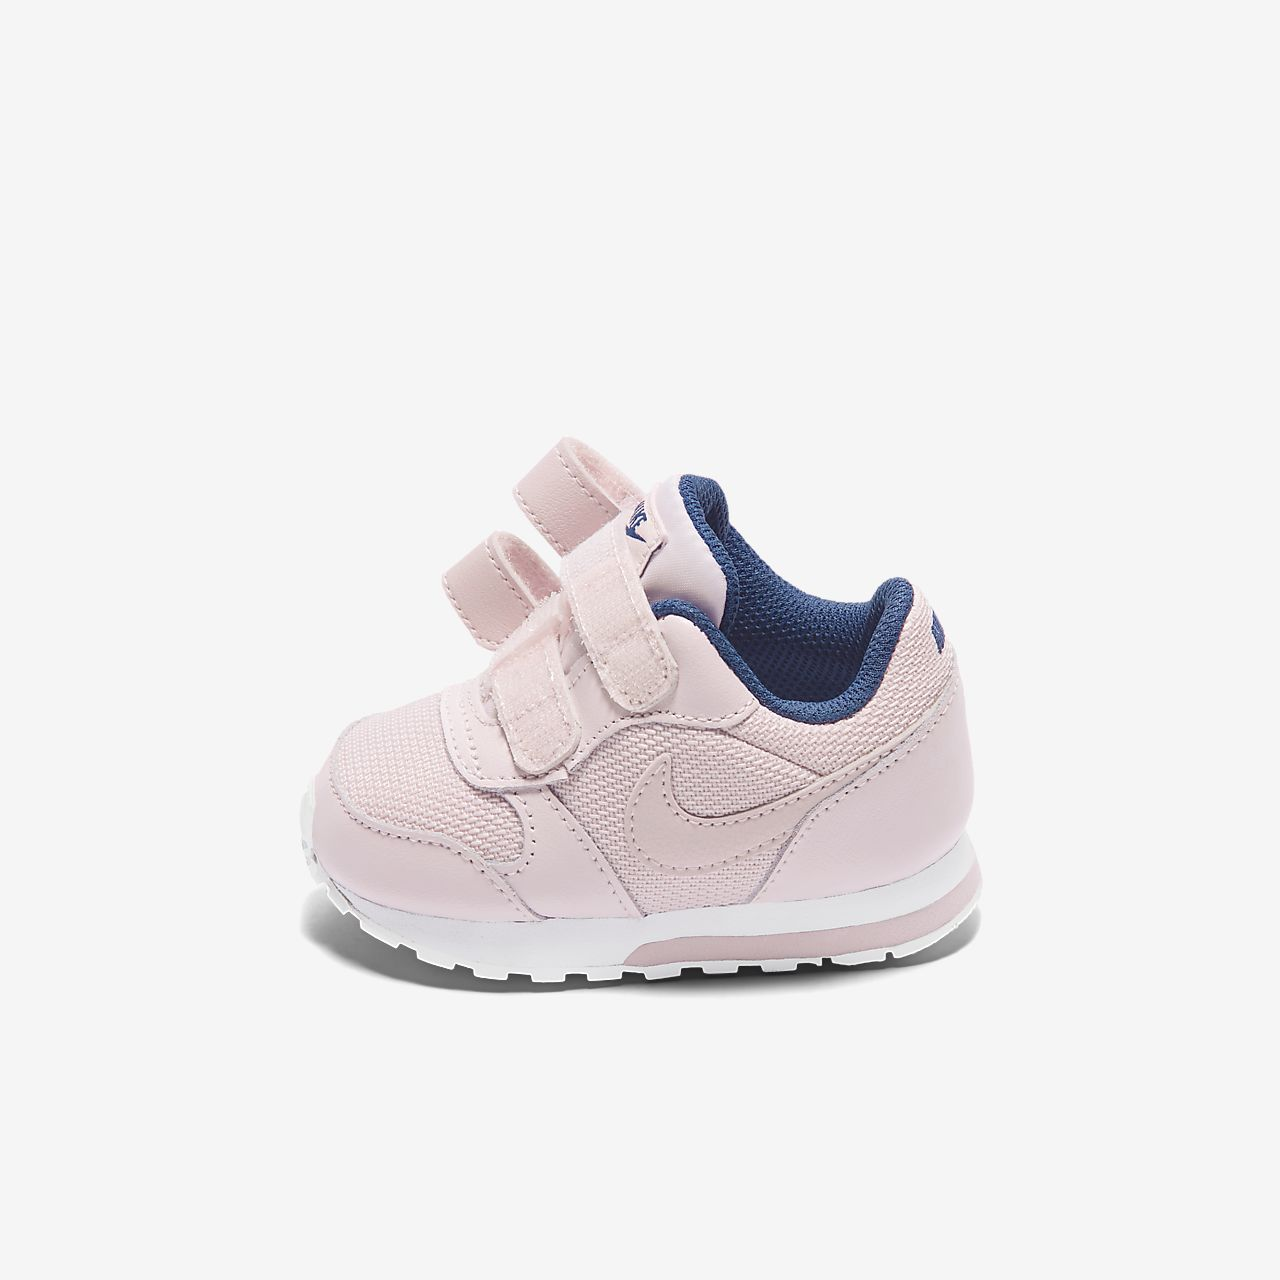 d27860625dd Nike MD Runner 2 Baby   Toddler Shoe. Nike.com ID